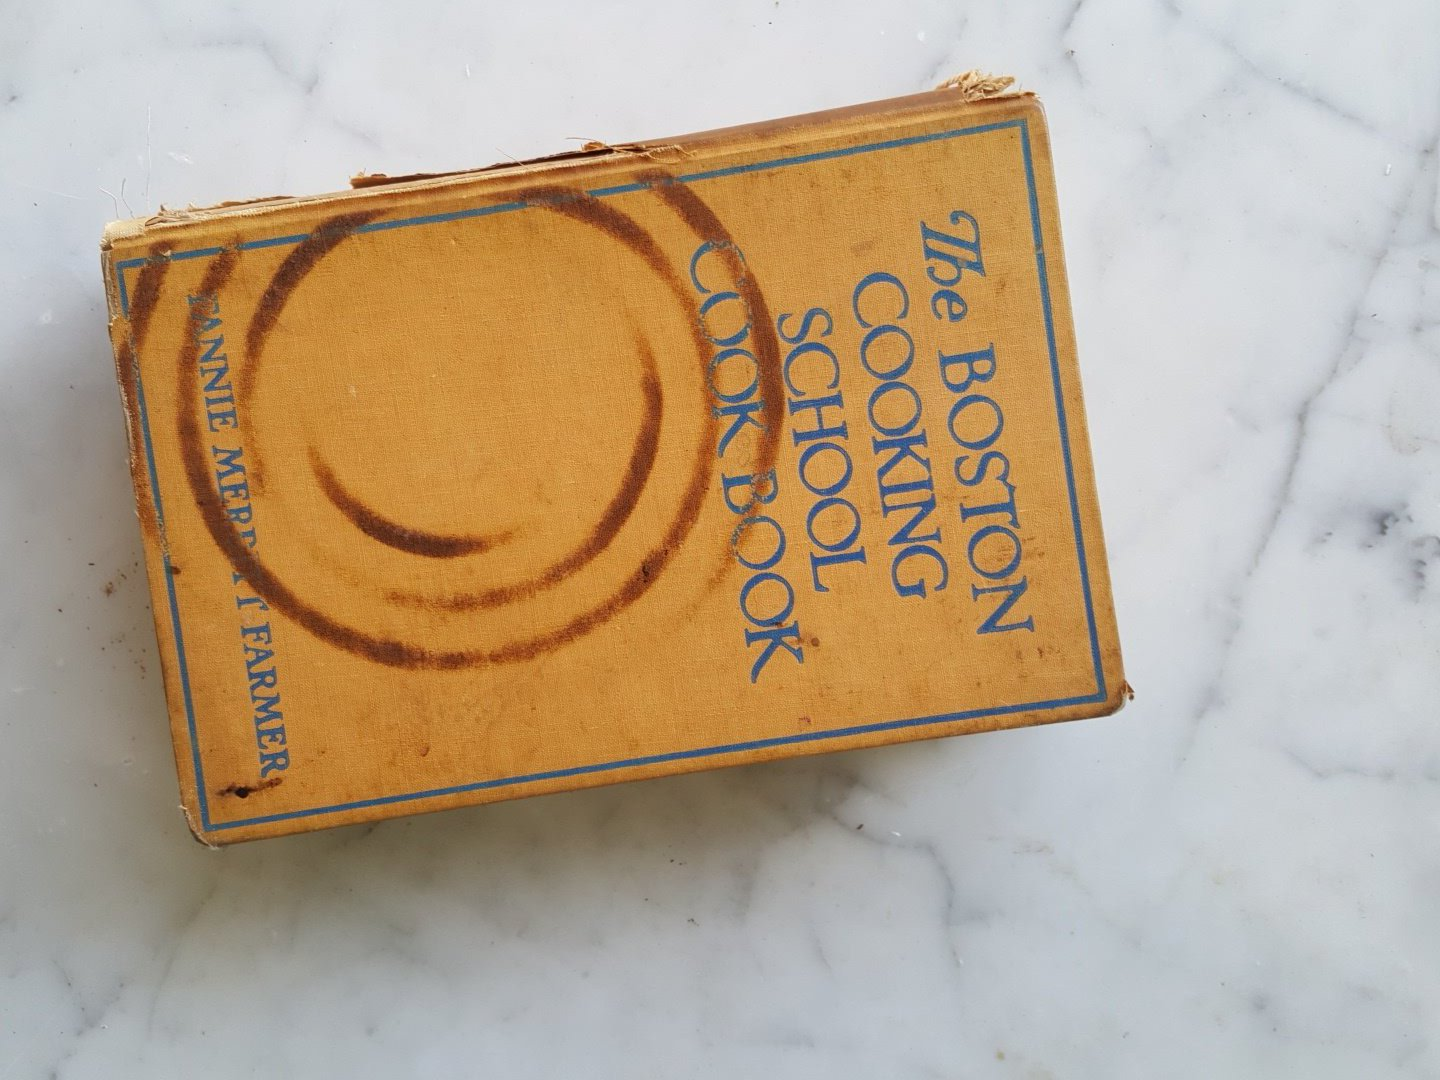 @historecipes Found this old copy of the Boston Cooking School Cookbook branded w/ the coil of electric burner!  #recipesconf #foodhistory https://t.co/qWDpAJSk5i